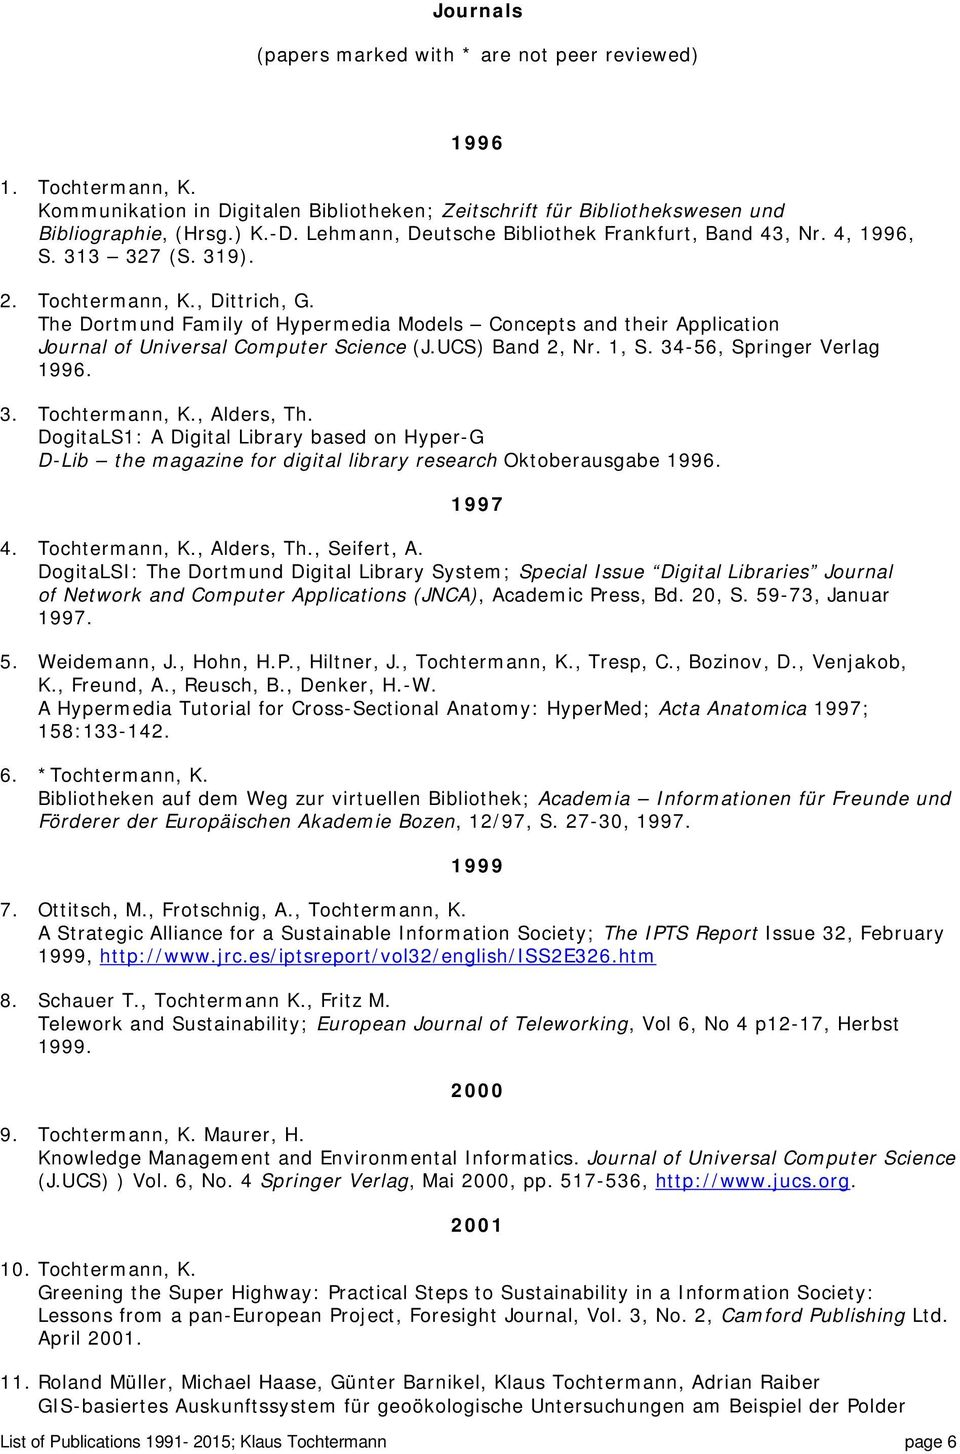 The Dortmund Family of Hypermedia Models Concepts and their Application Journal of Universal Computer Science (J.UCS) Band 2, Nr. 1, S. 34-56, Springer Verlag 1996. 3. Tochtermann, K., Alders, Th.